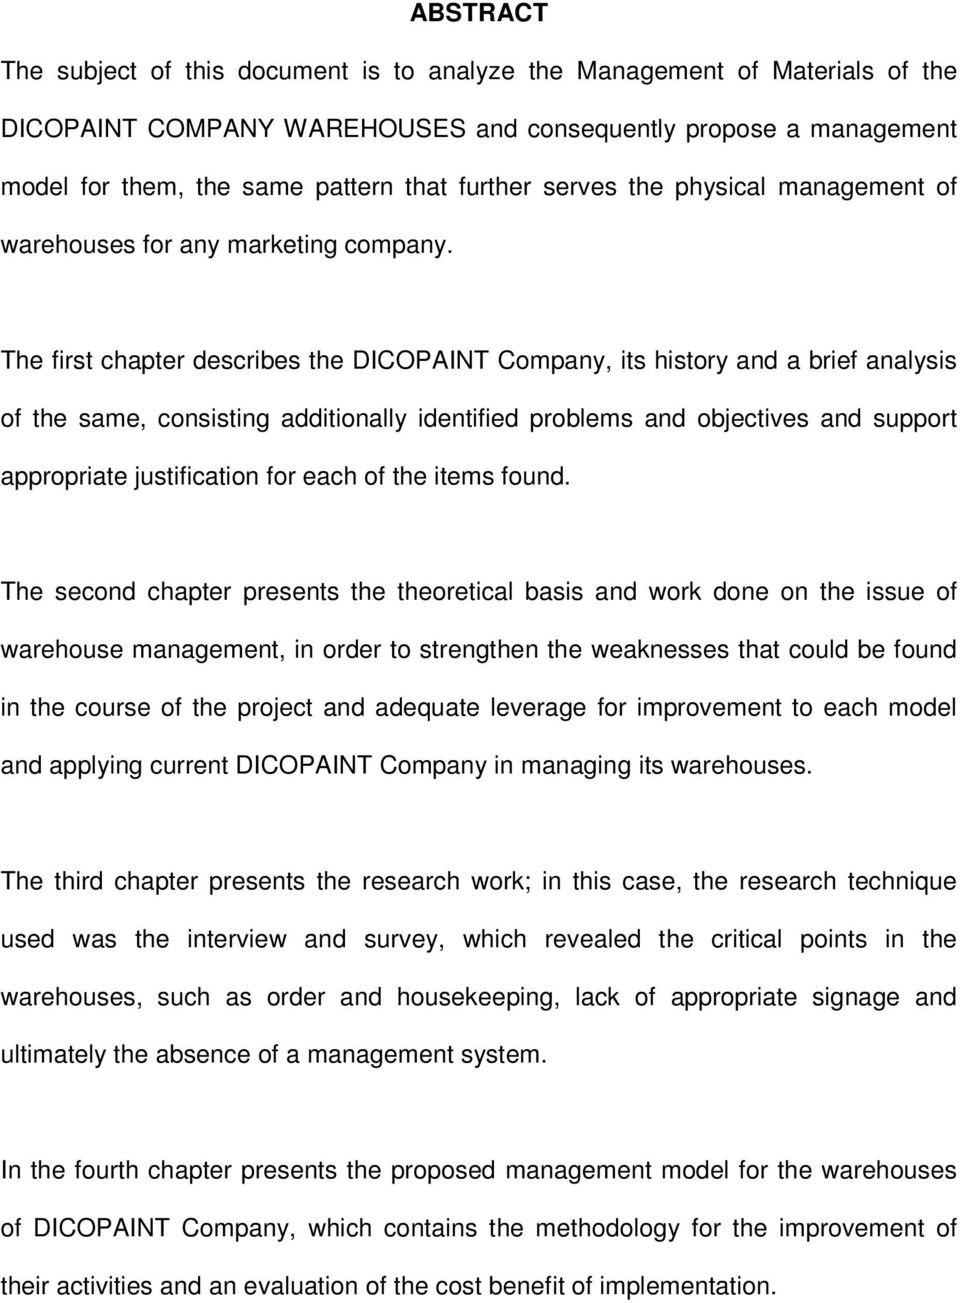 The first chapter describes the DICOPAINT Company, its history and a brief analysis of the same, consisting additionally identified problems and objectives and support appropriate justification for